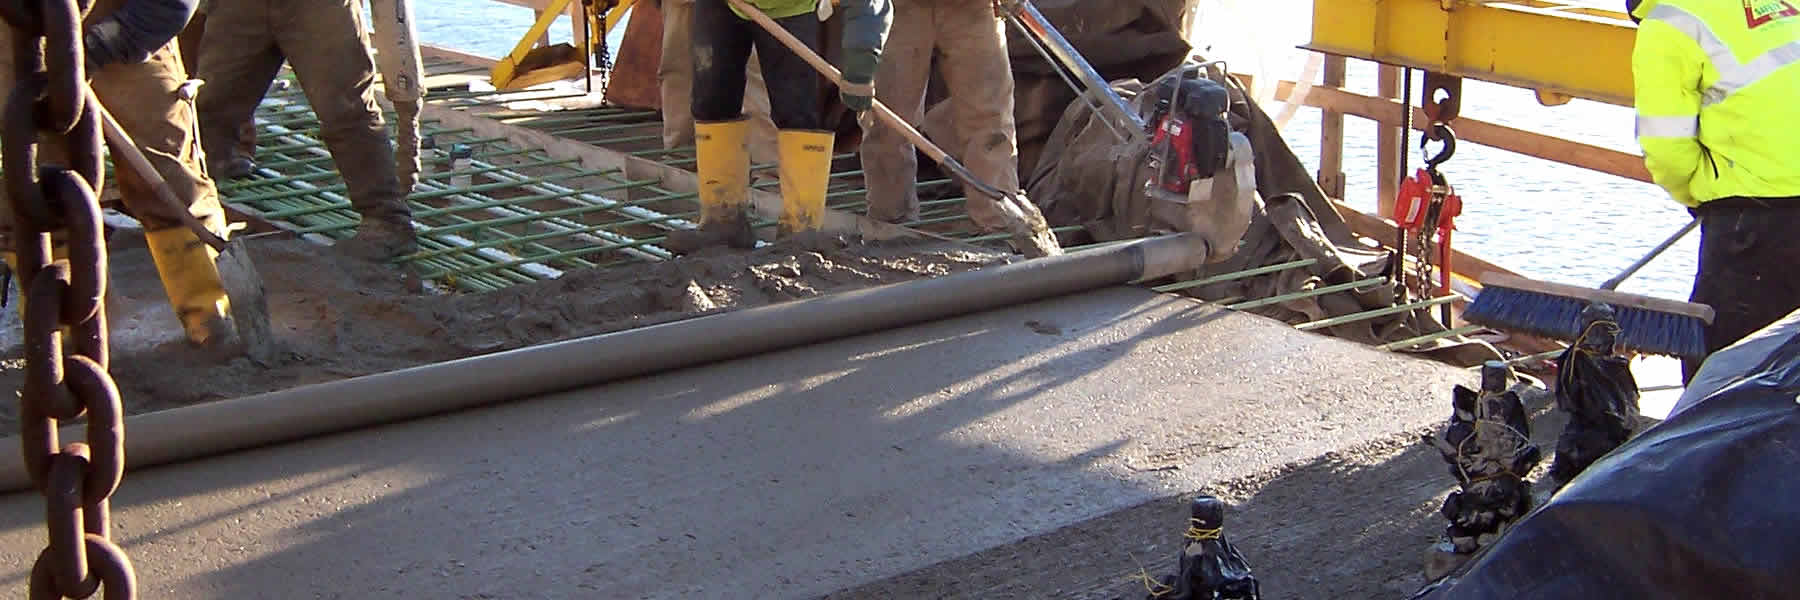 Get a concrete screed roller from Lura Enterprises.